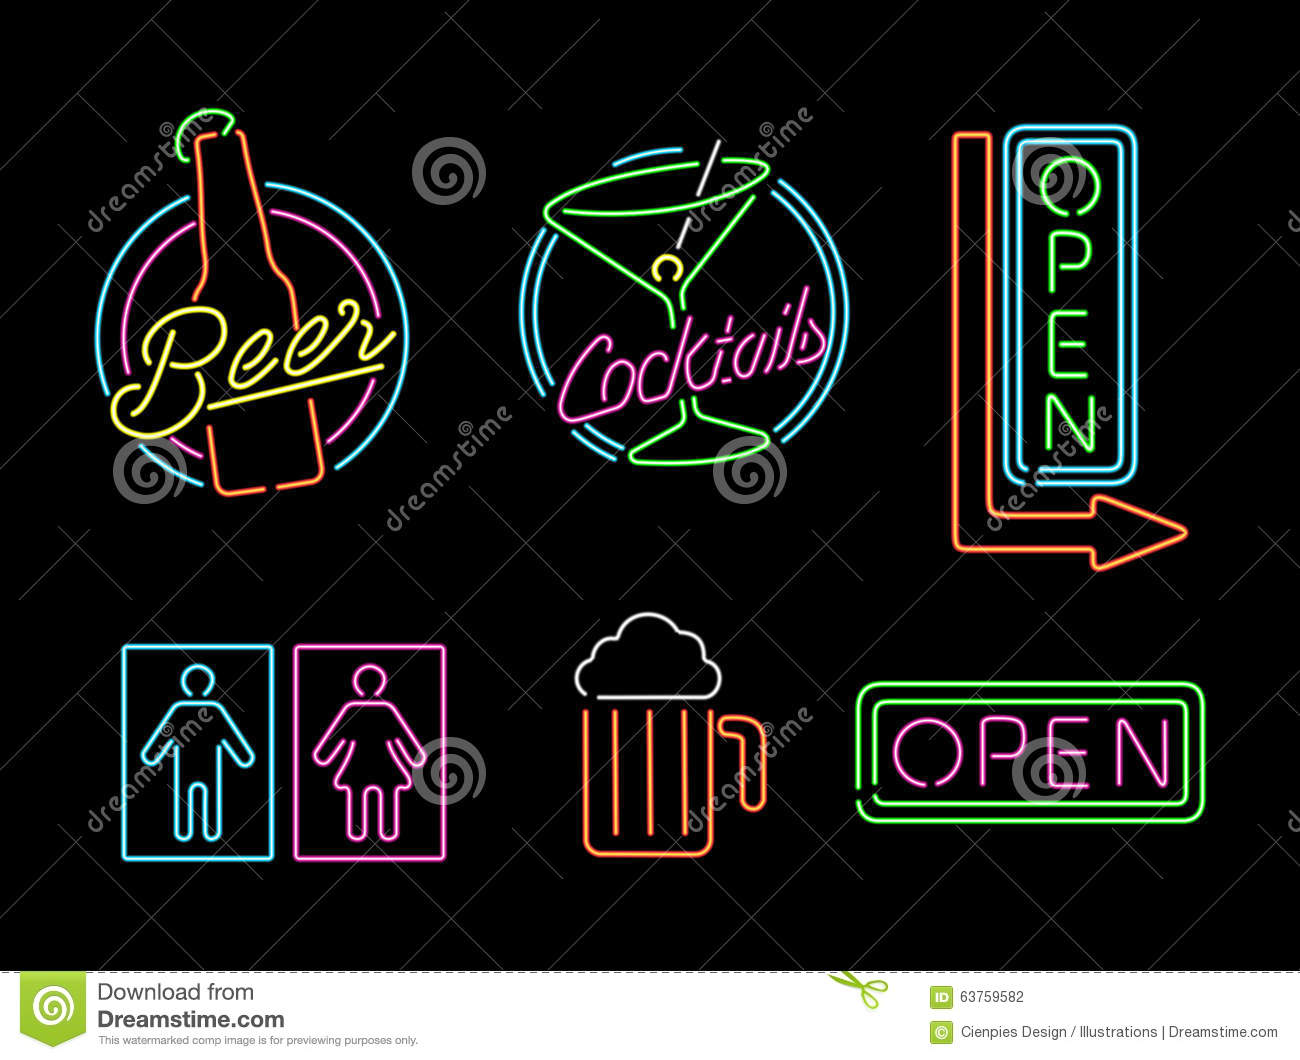 Neon light sign set icon retro bar beer open label stock vector neon light sign set icon retro bar beer open label stock vector illustration of colorful color 63759582 aloadofball Images